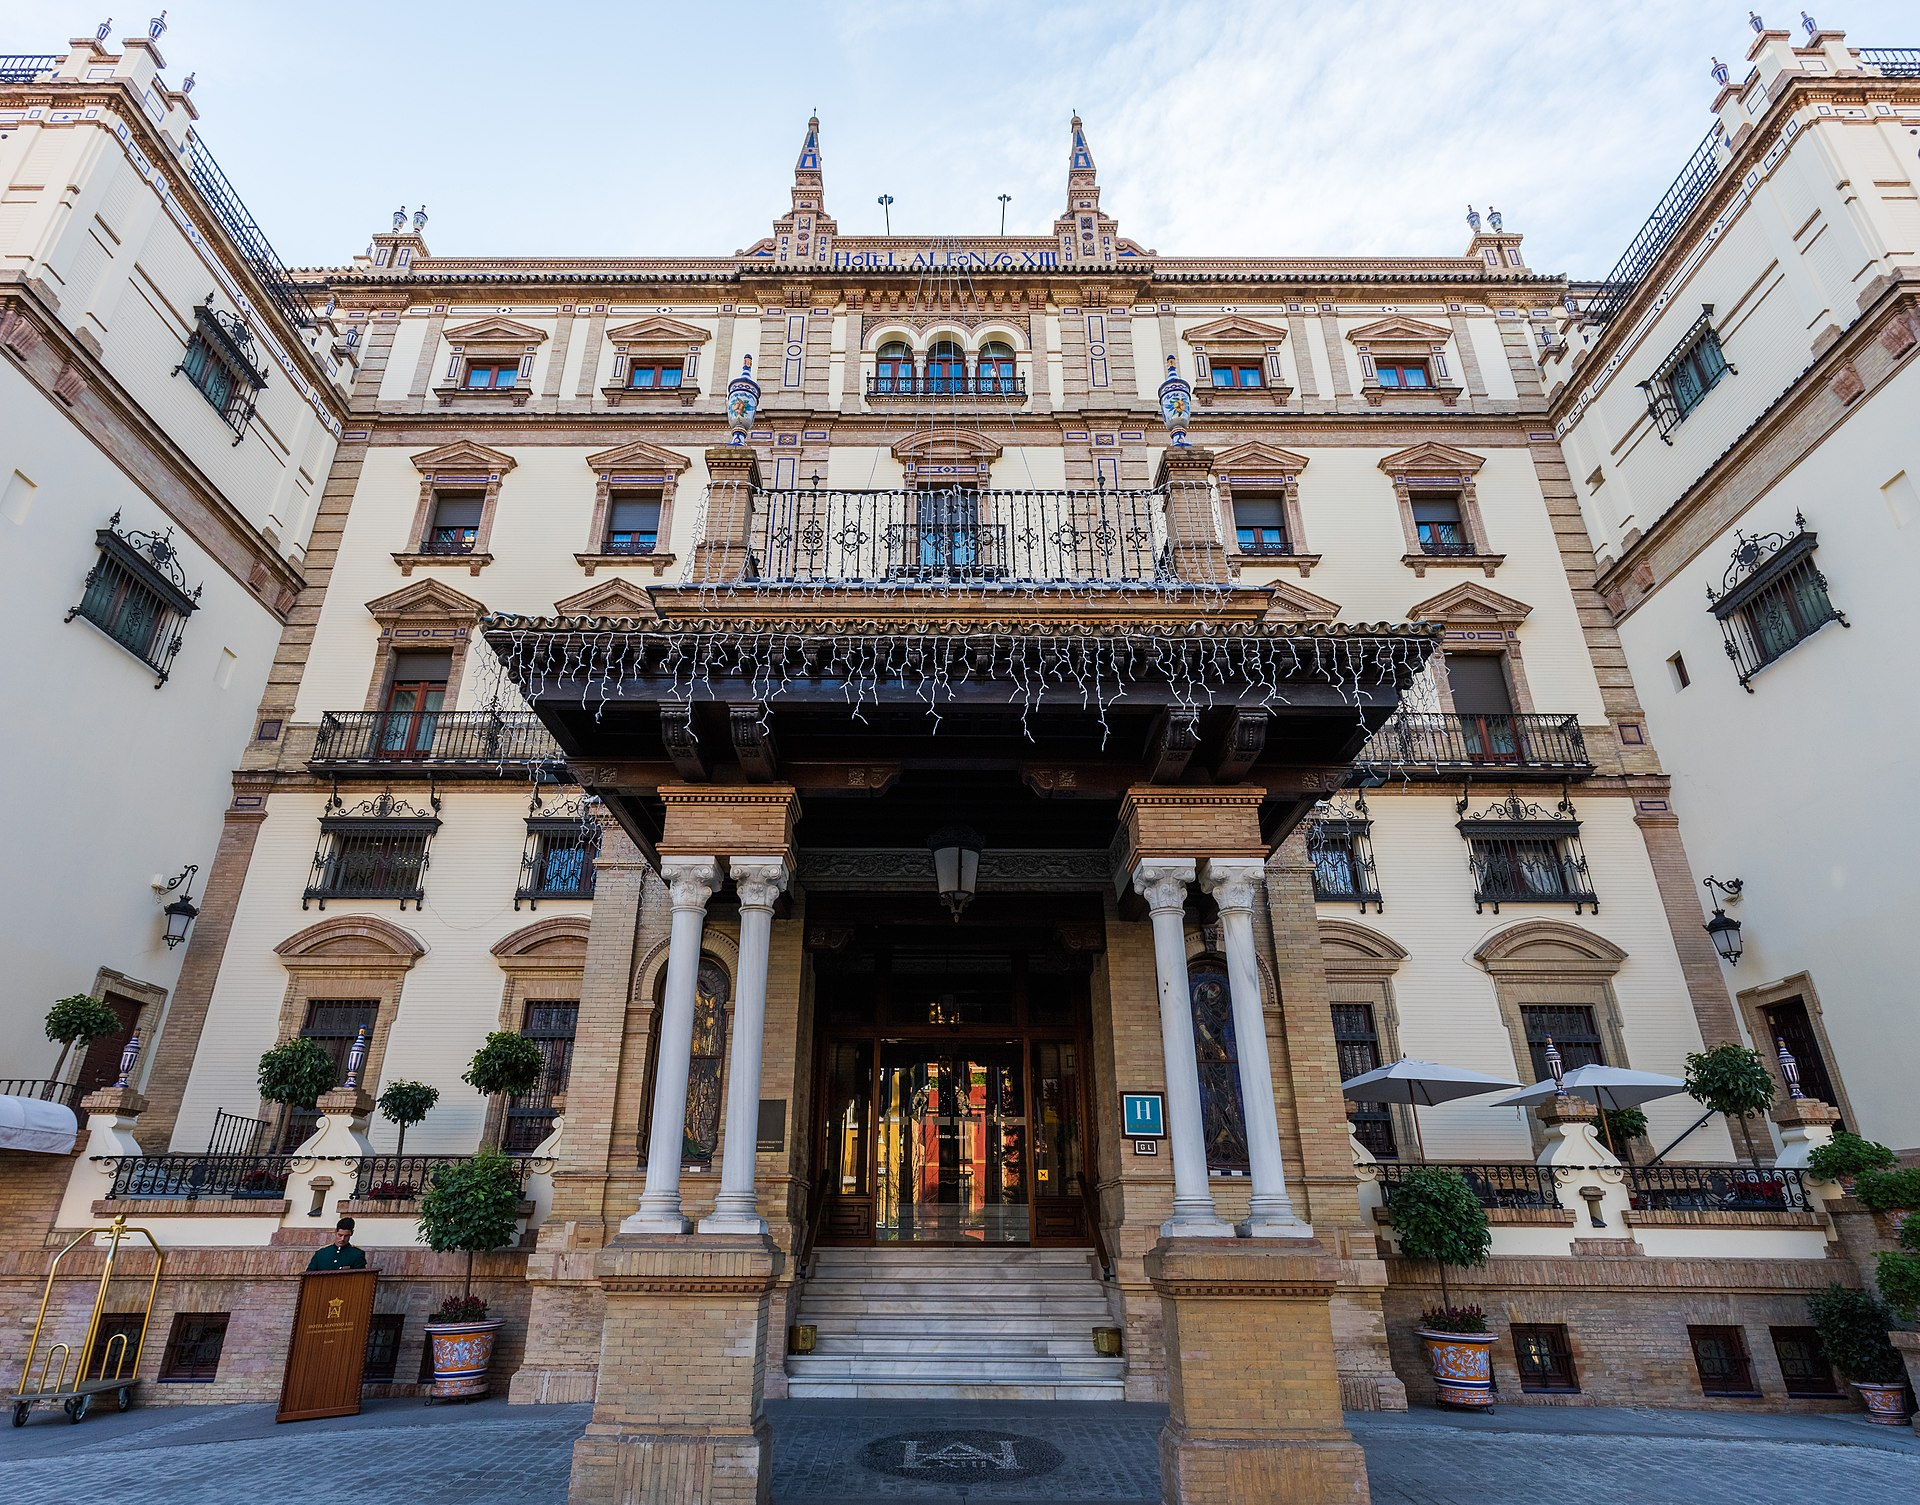 Hotel alfonso xiii wikipedia for Hotel design seville